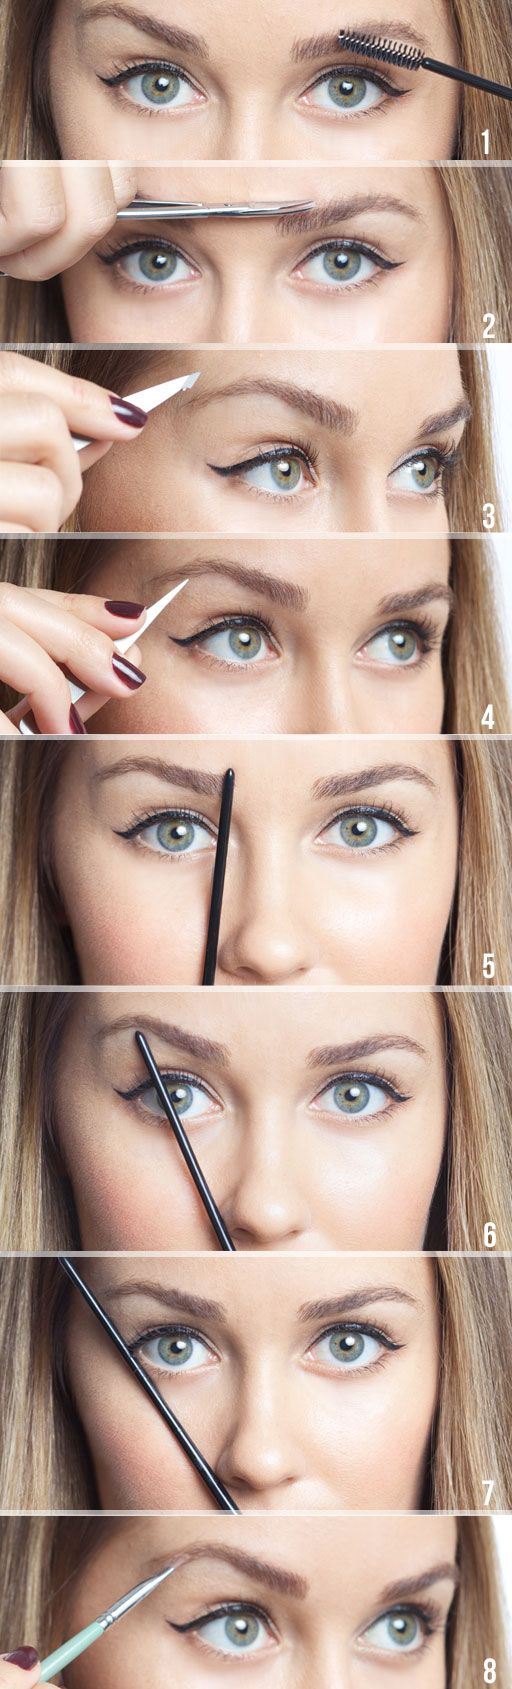 Kinda needed this tutorial when I massacred my eyebrows a couple of months ago trying to trim them.